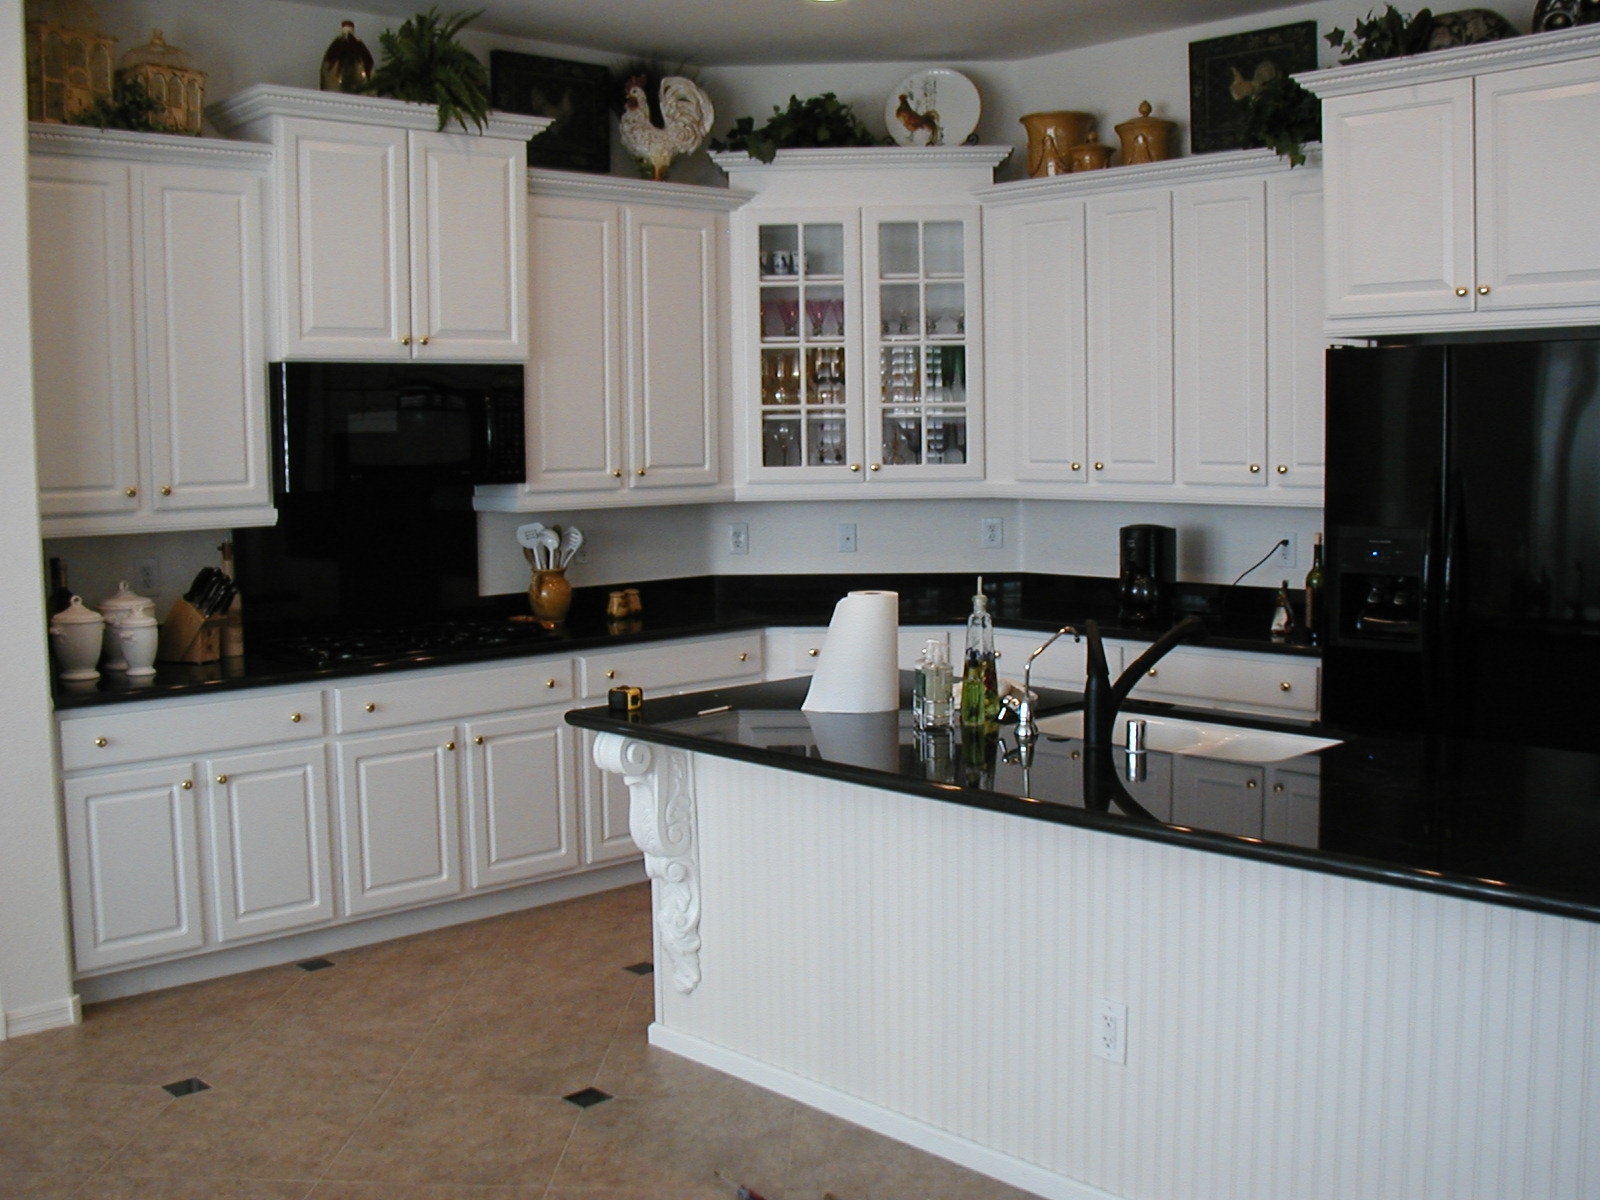 Hmh designs white kitchen cabinets timeless and transcendent for Dark cabinet kitchen ideas